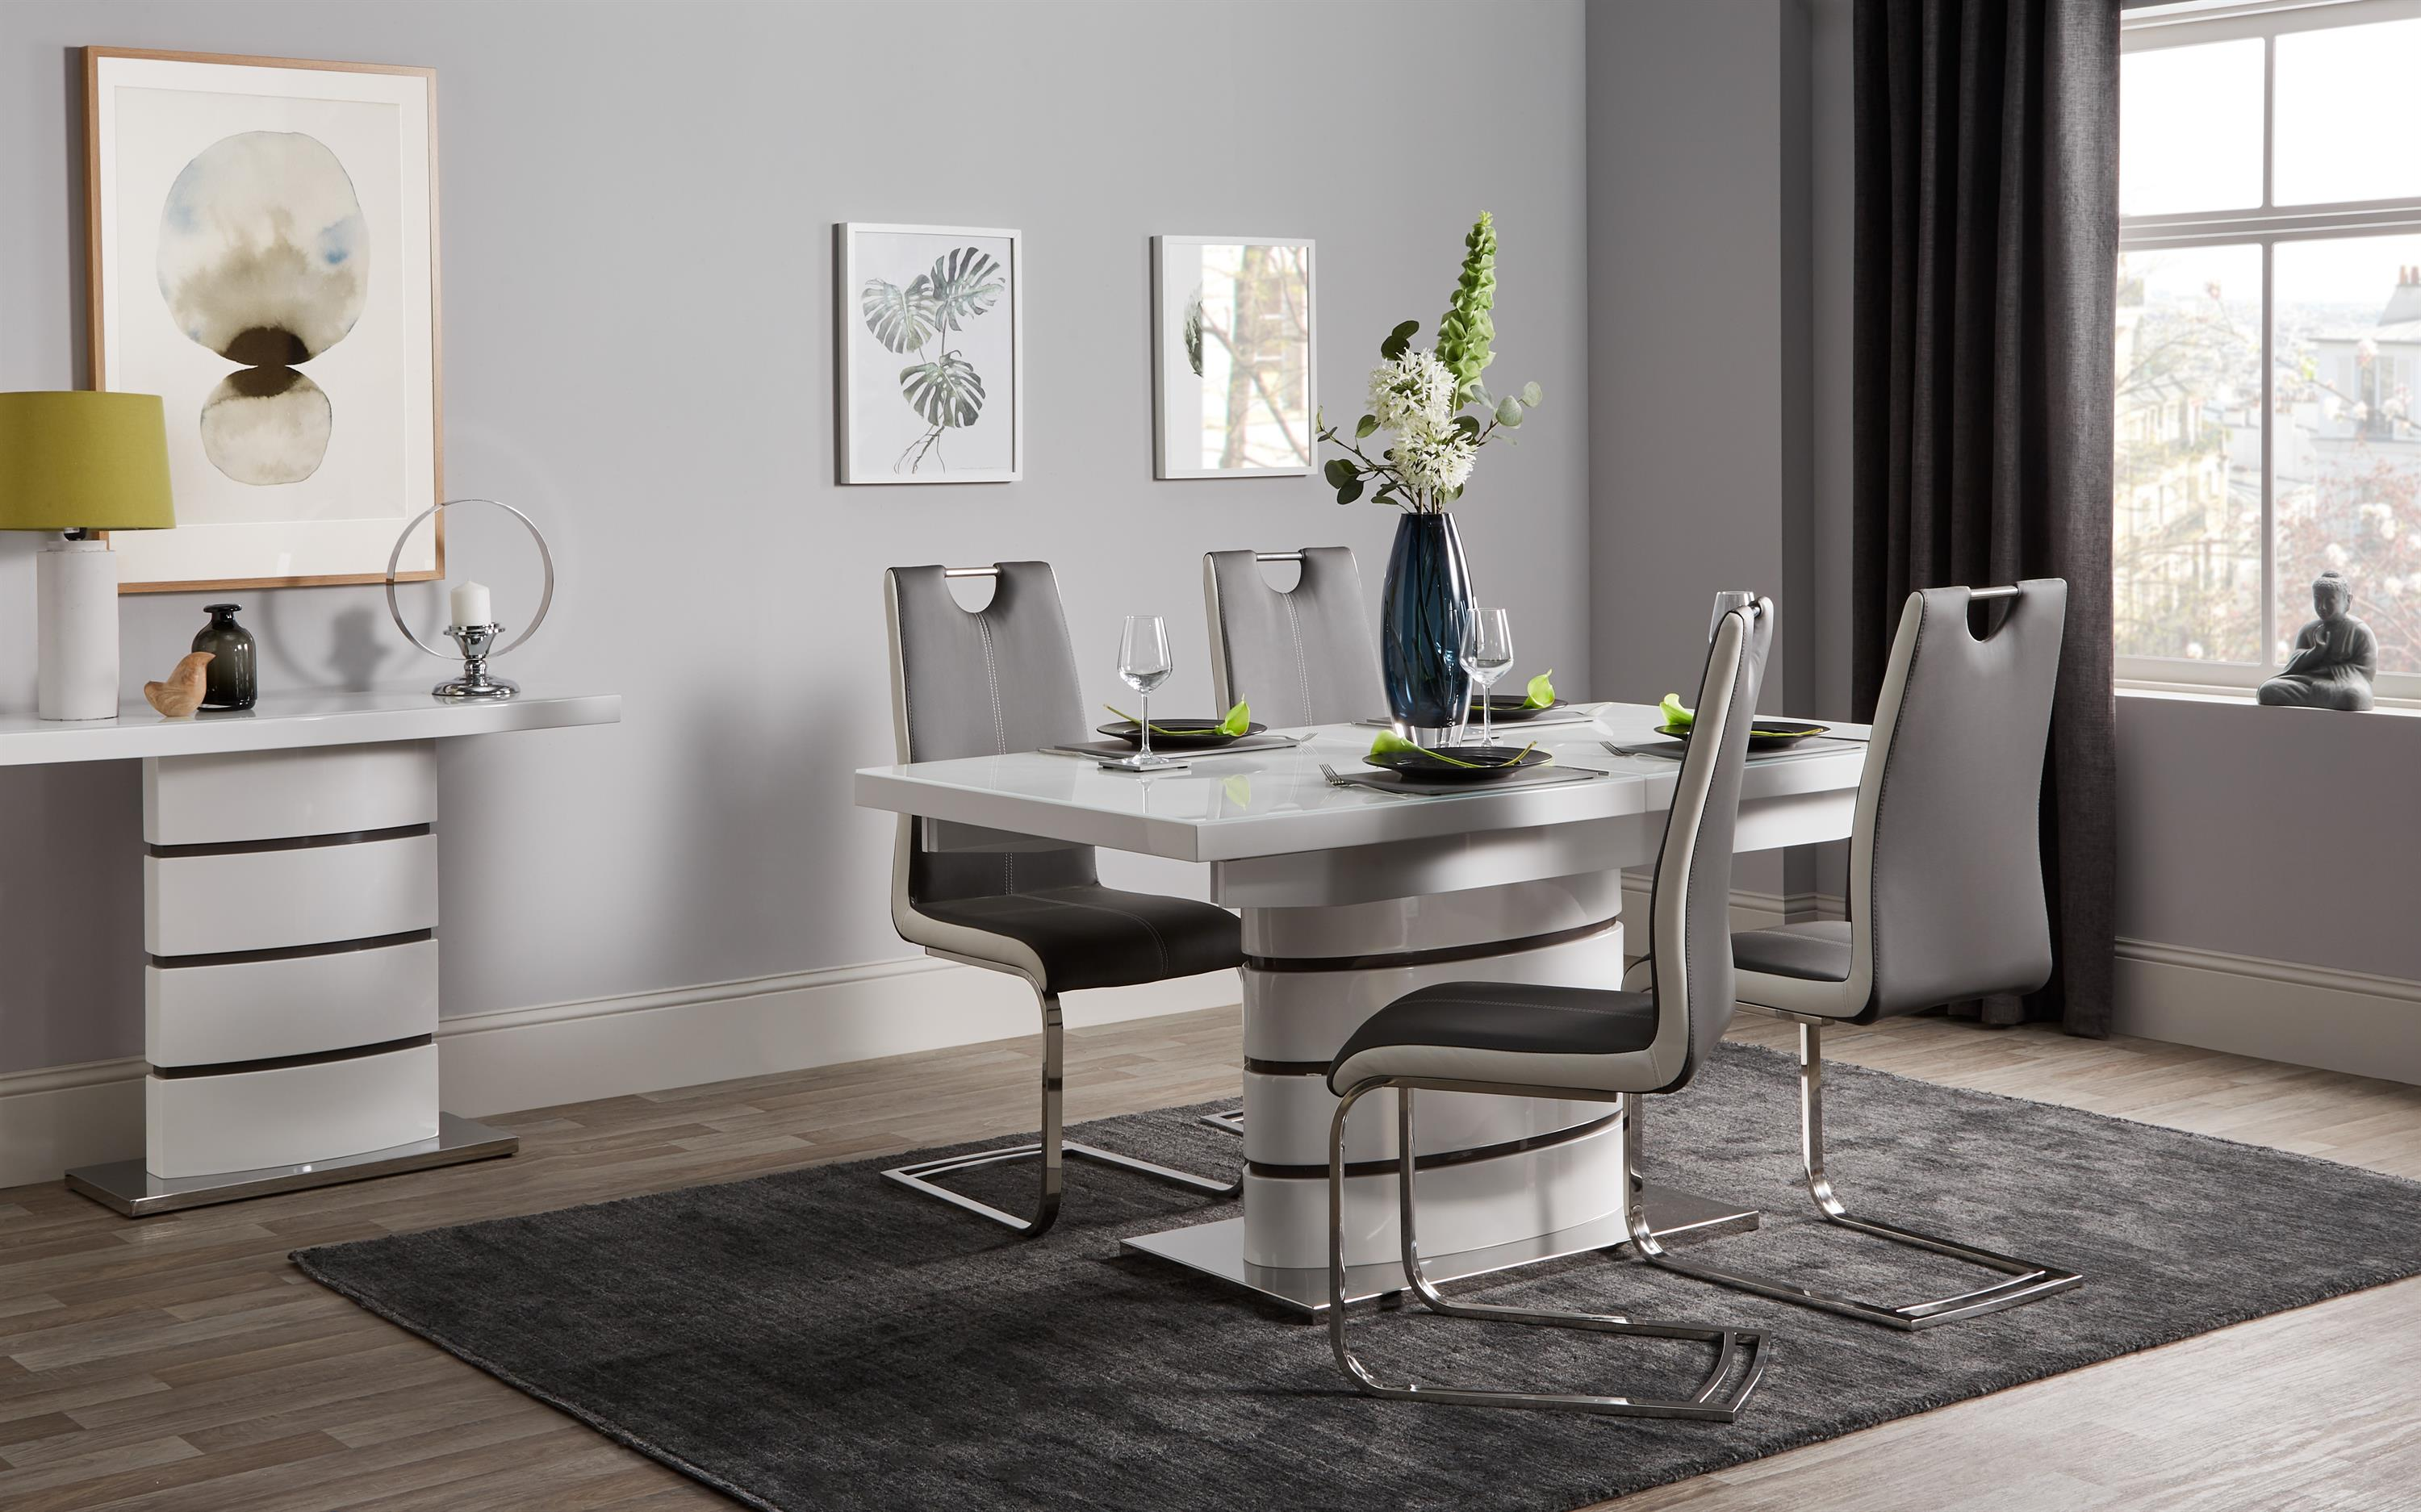 Rimini White Dining Table & 4 Chairs, , large